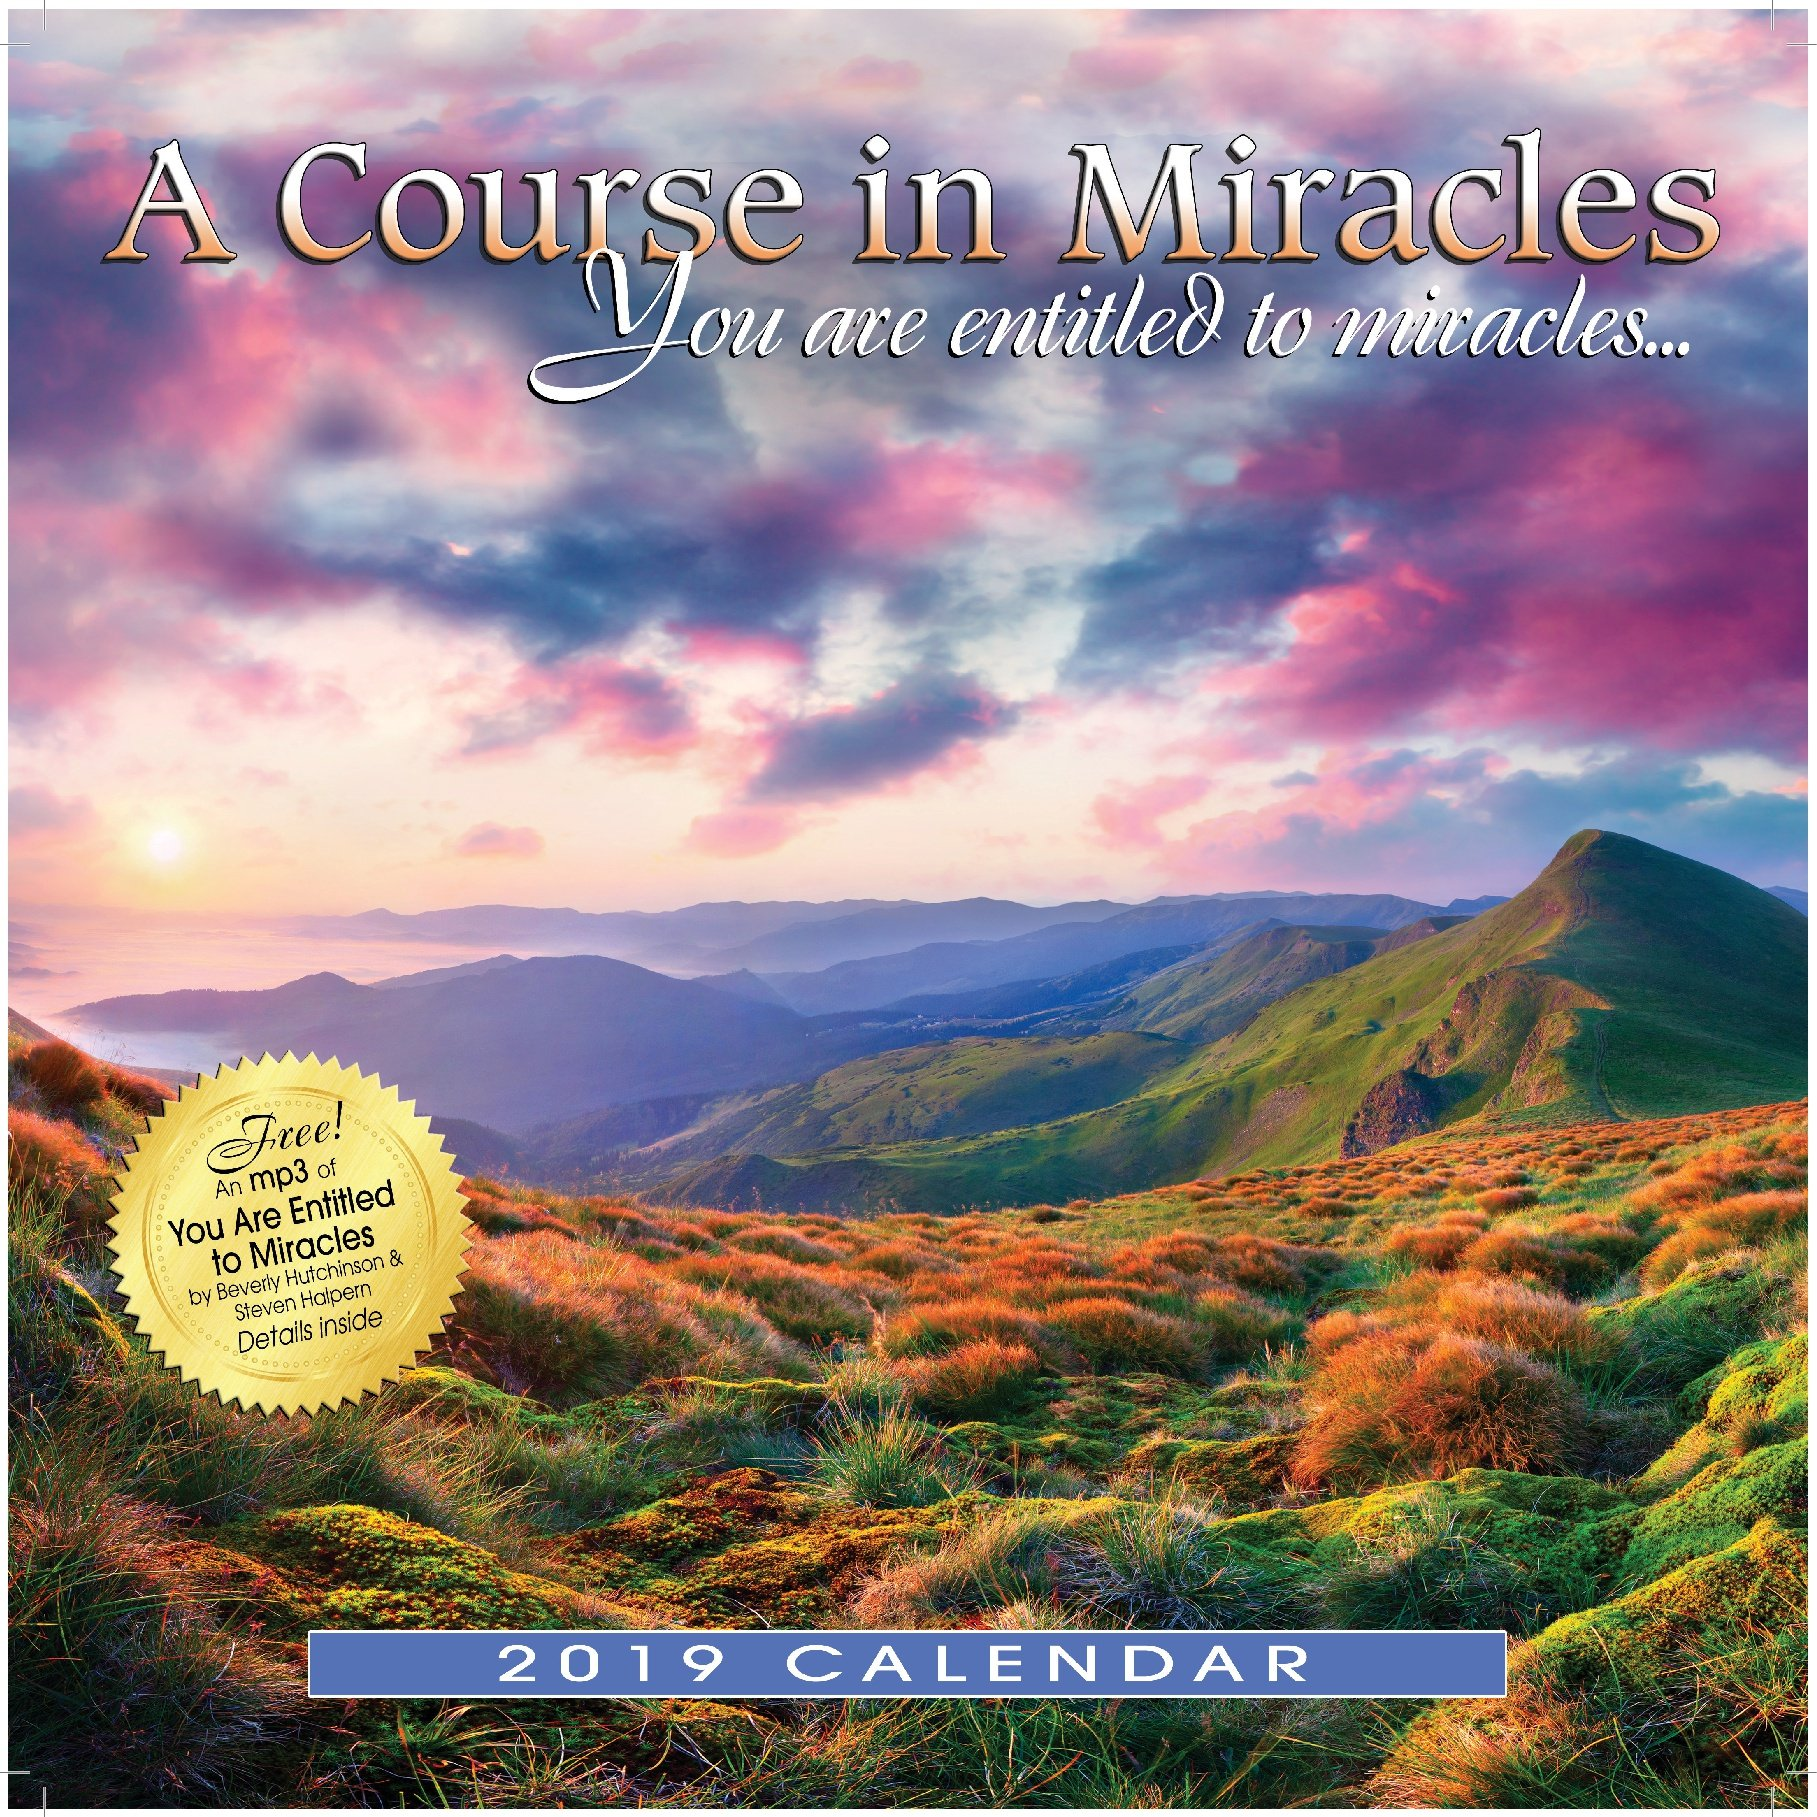 A course in miracles avaiya media.